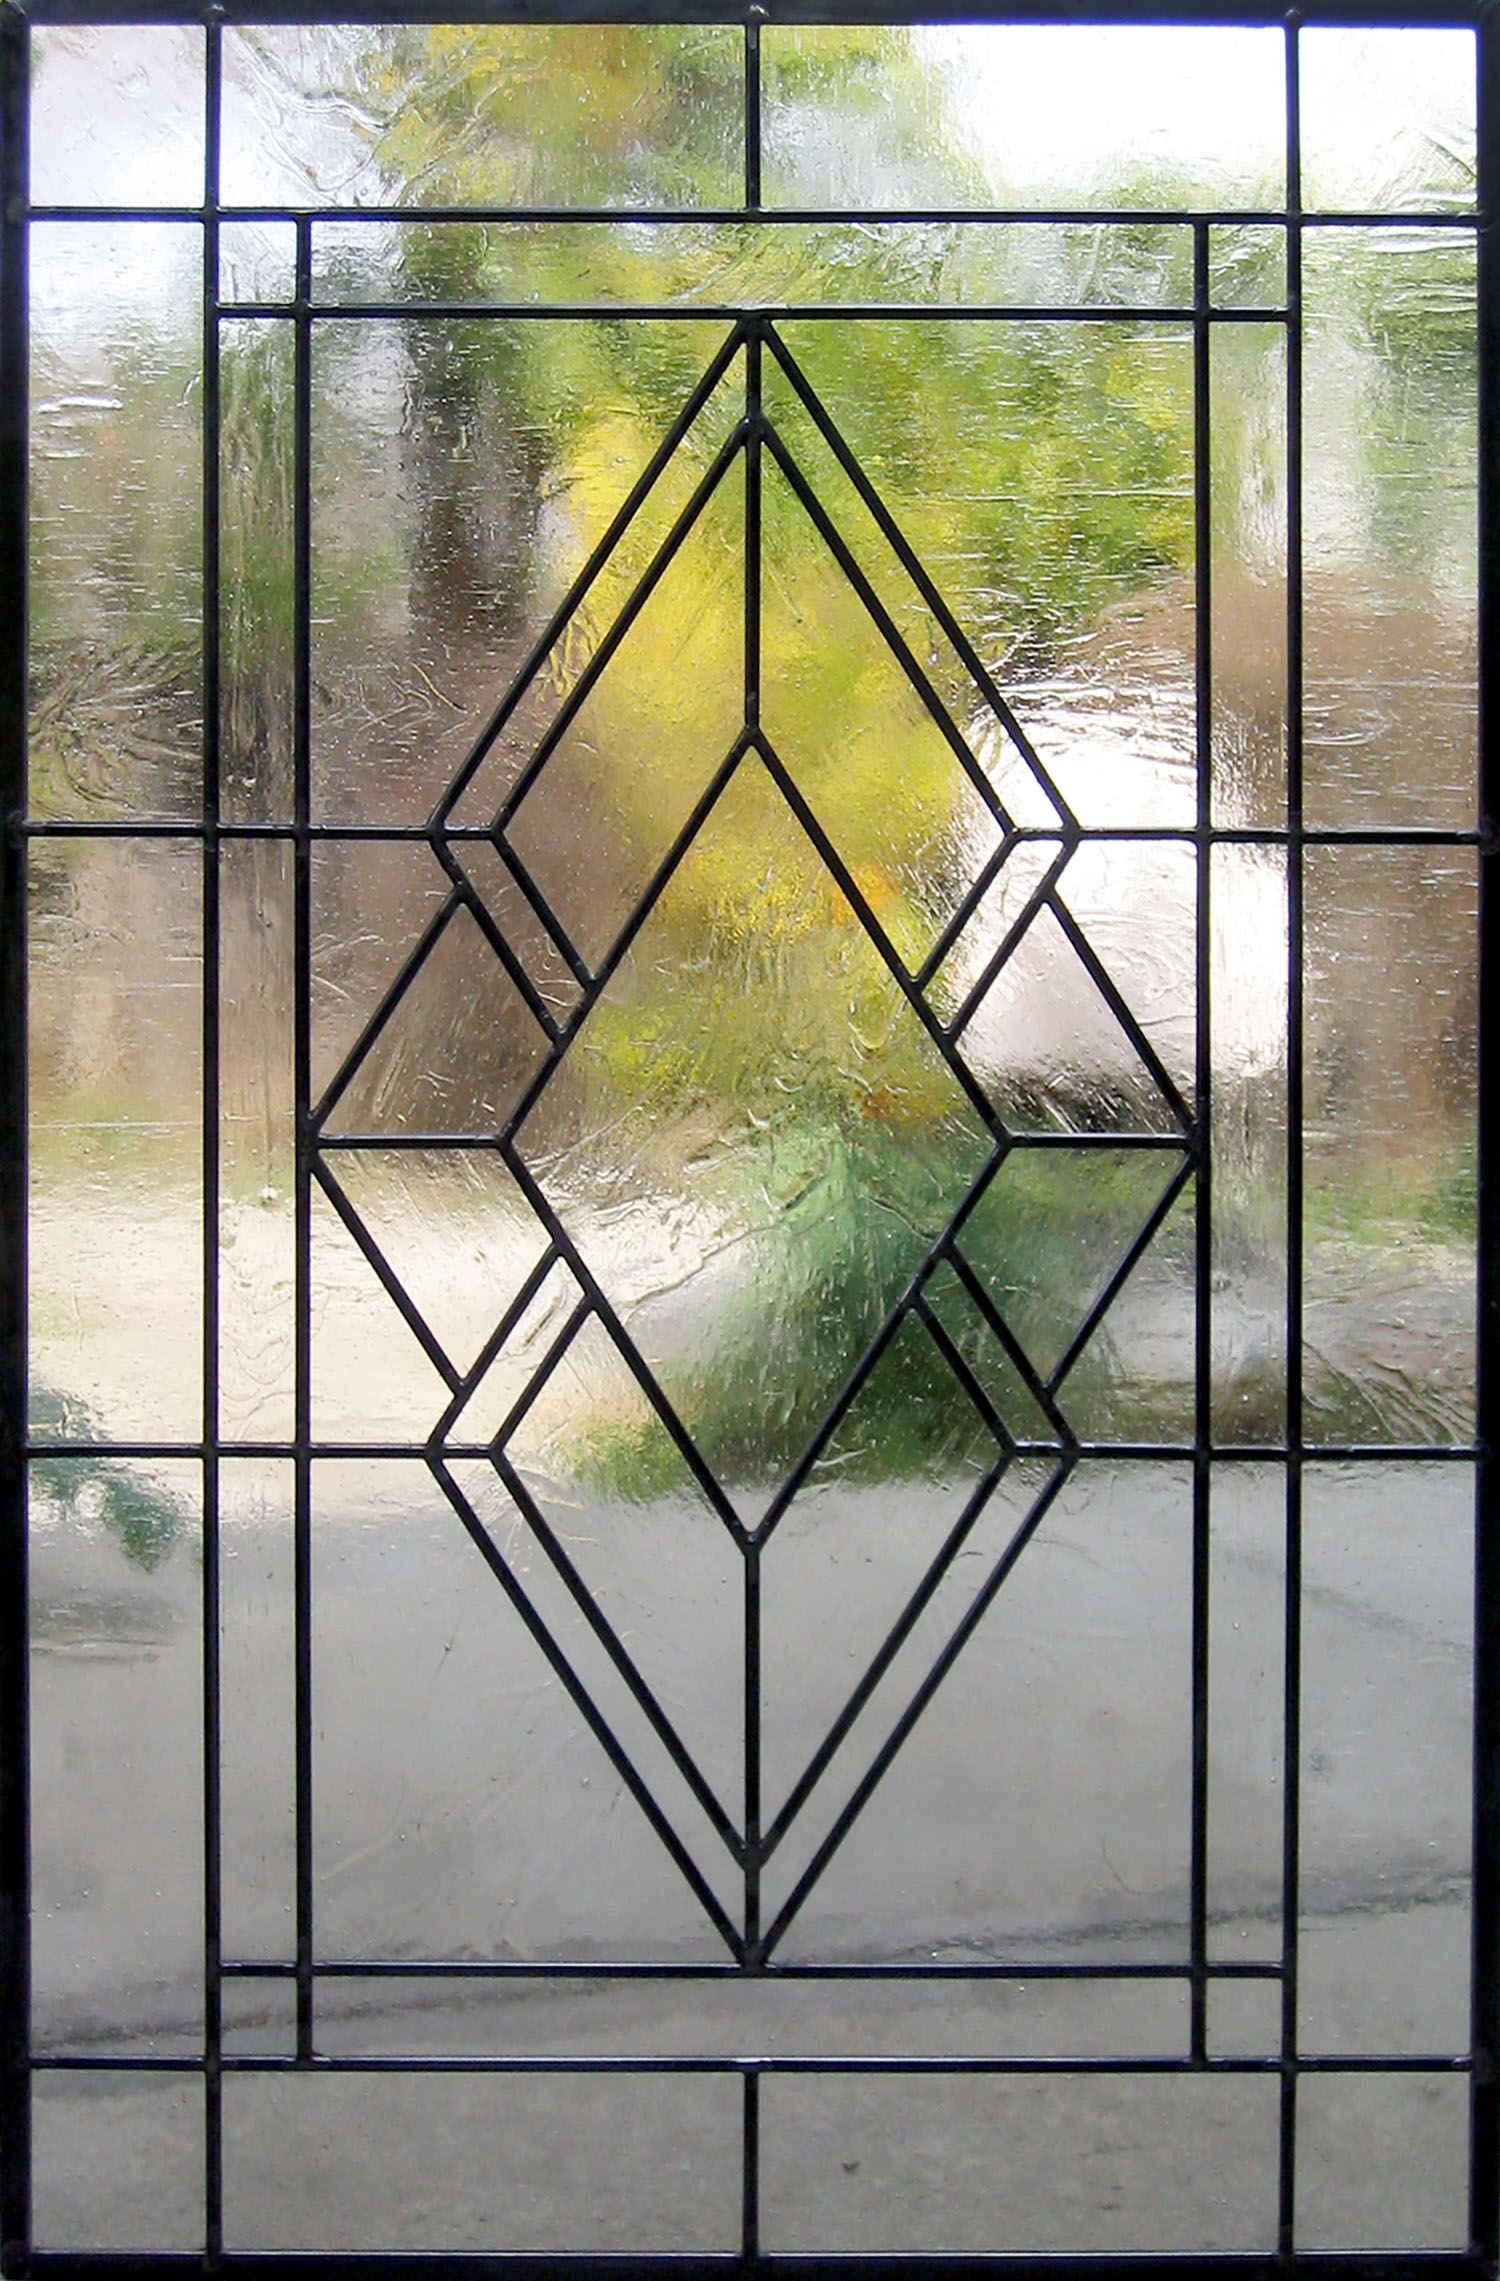 art deco diamond clear texture craftsman leaded glass stained glass window palo alto atherton california san francisco san jose.jpg